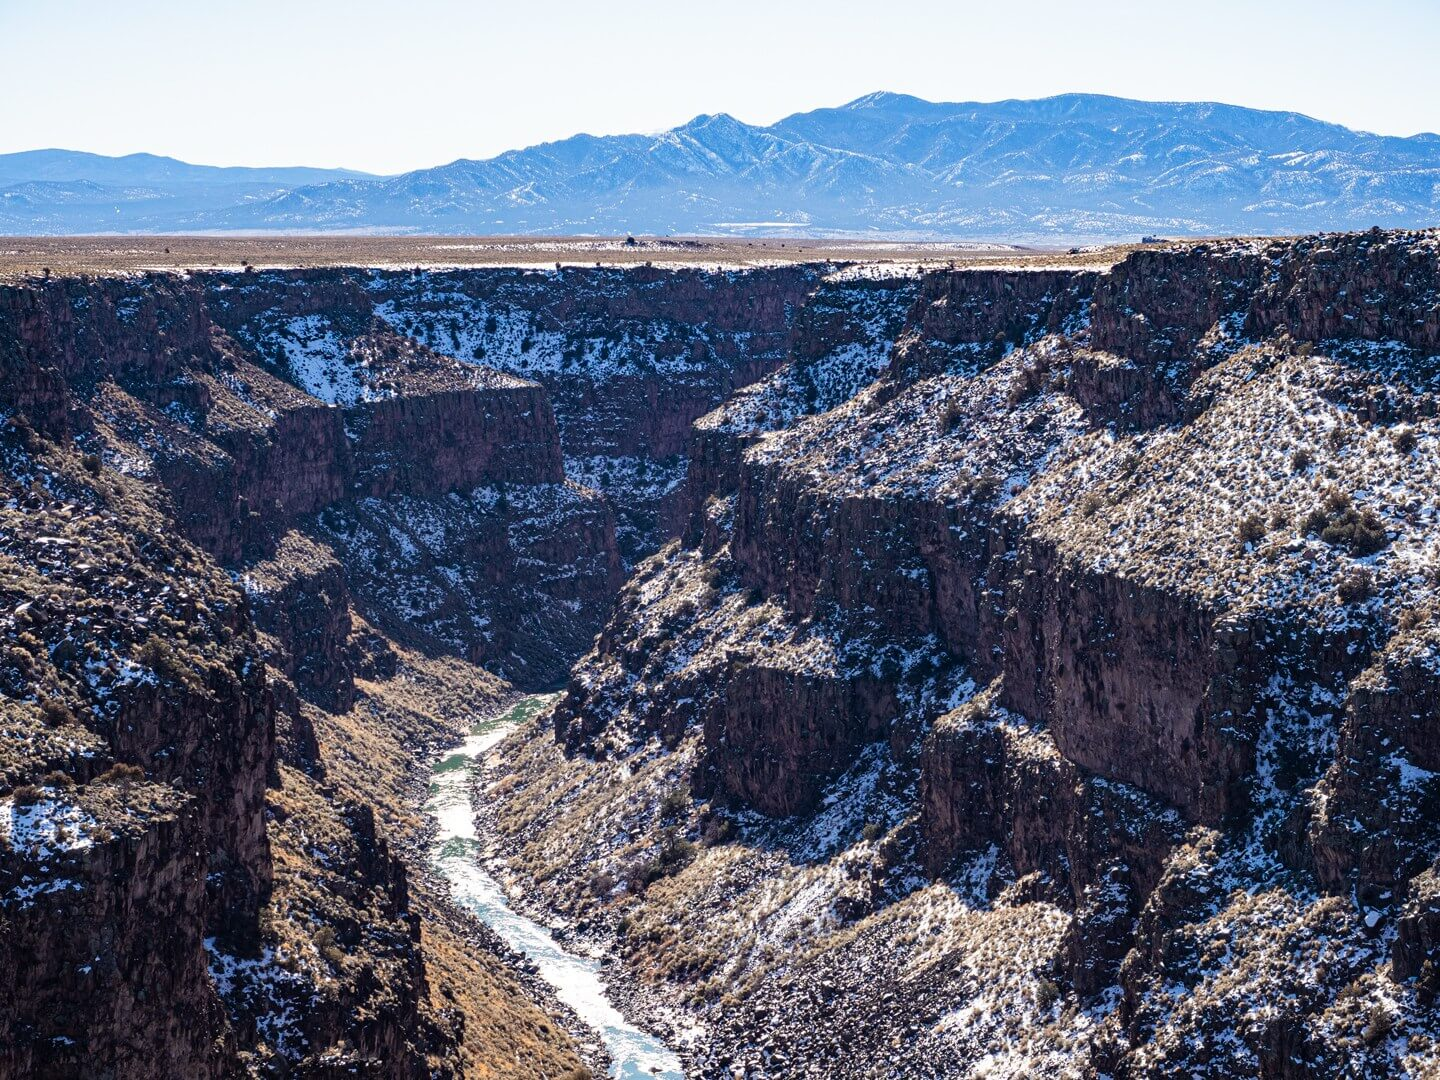 View from Rio Grande Gorge bridge during winter